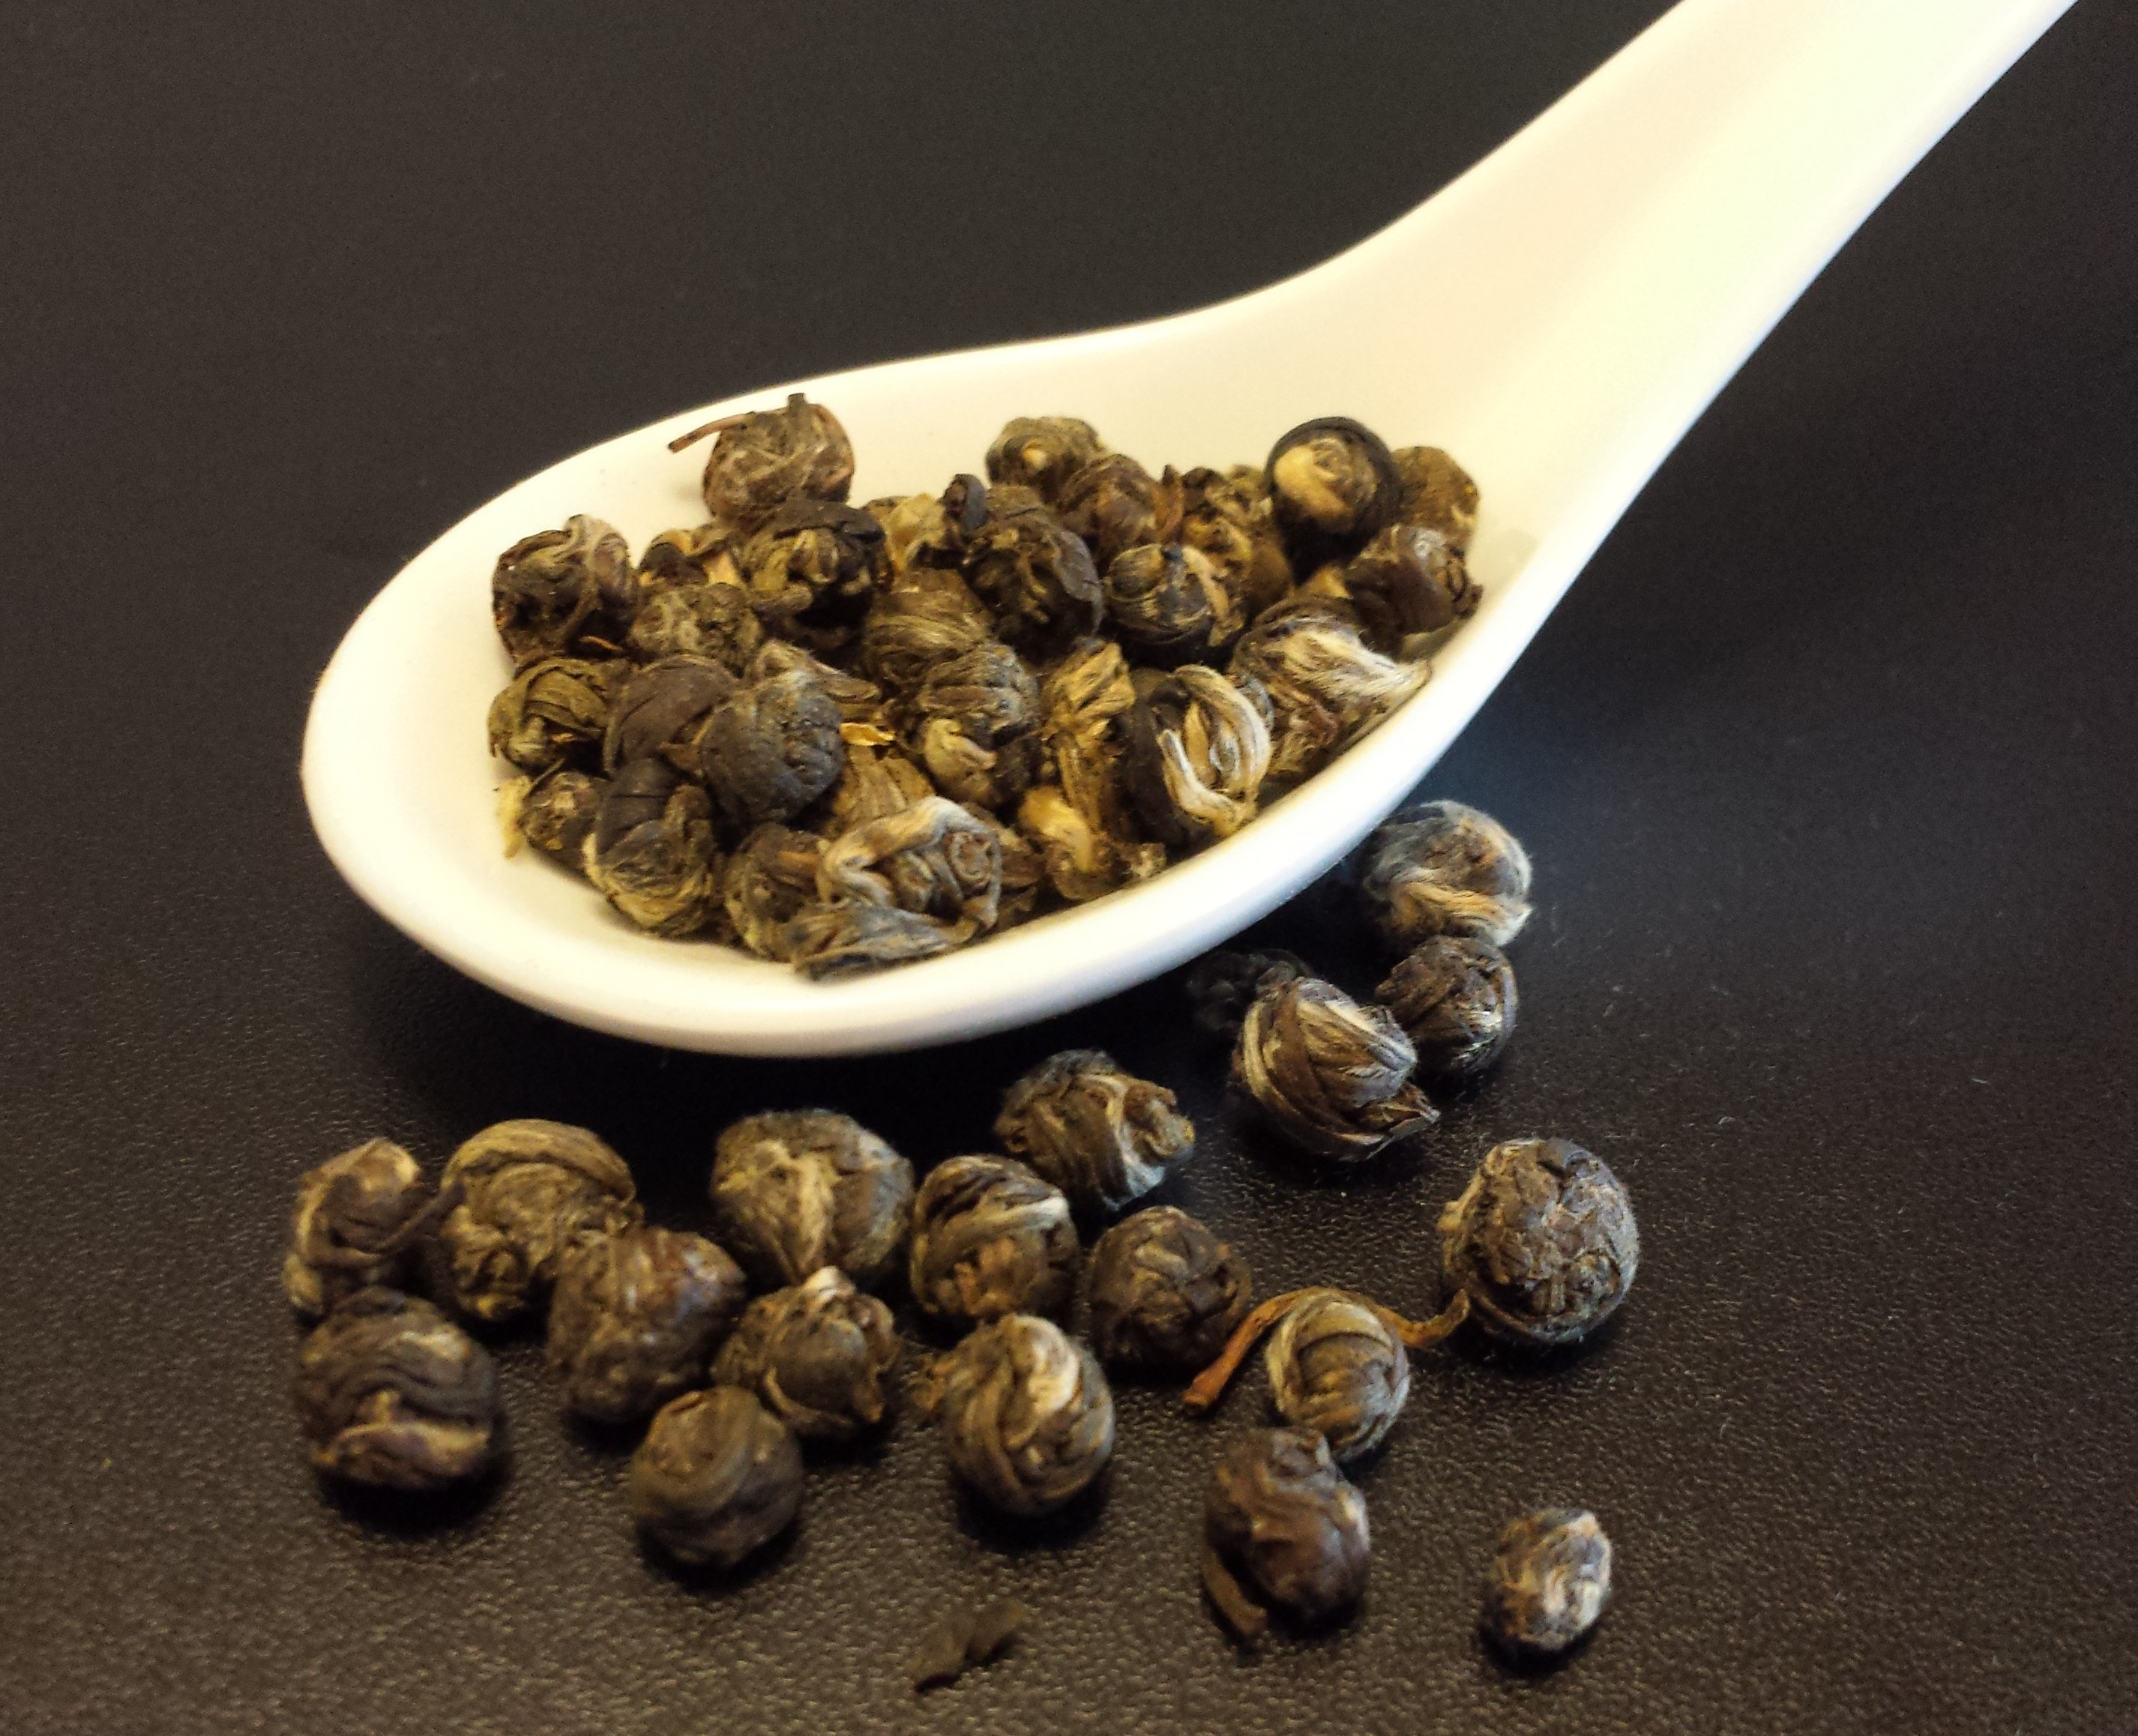 Jasmine Dragon Phoenix Pearls, hand-rolled tea, jasmine, green tea, Chinese tea